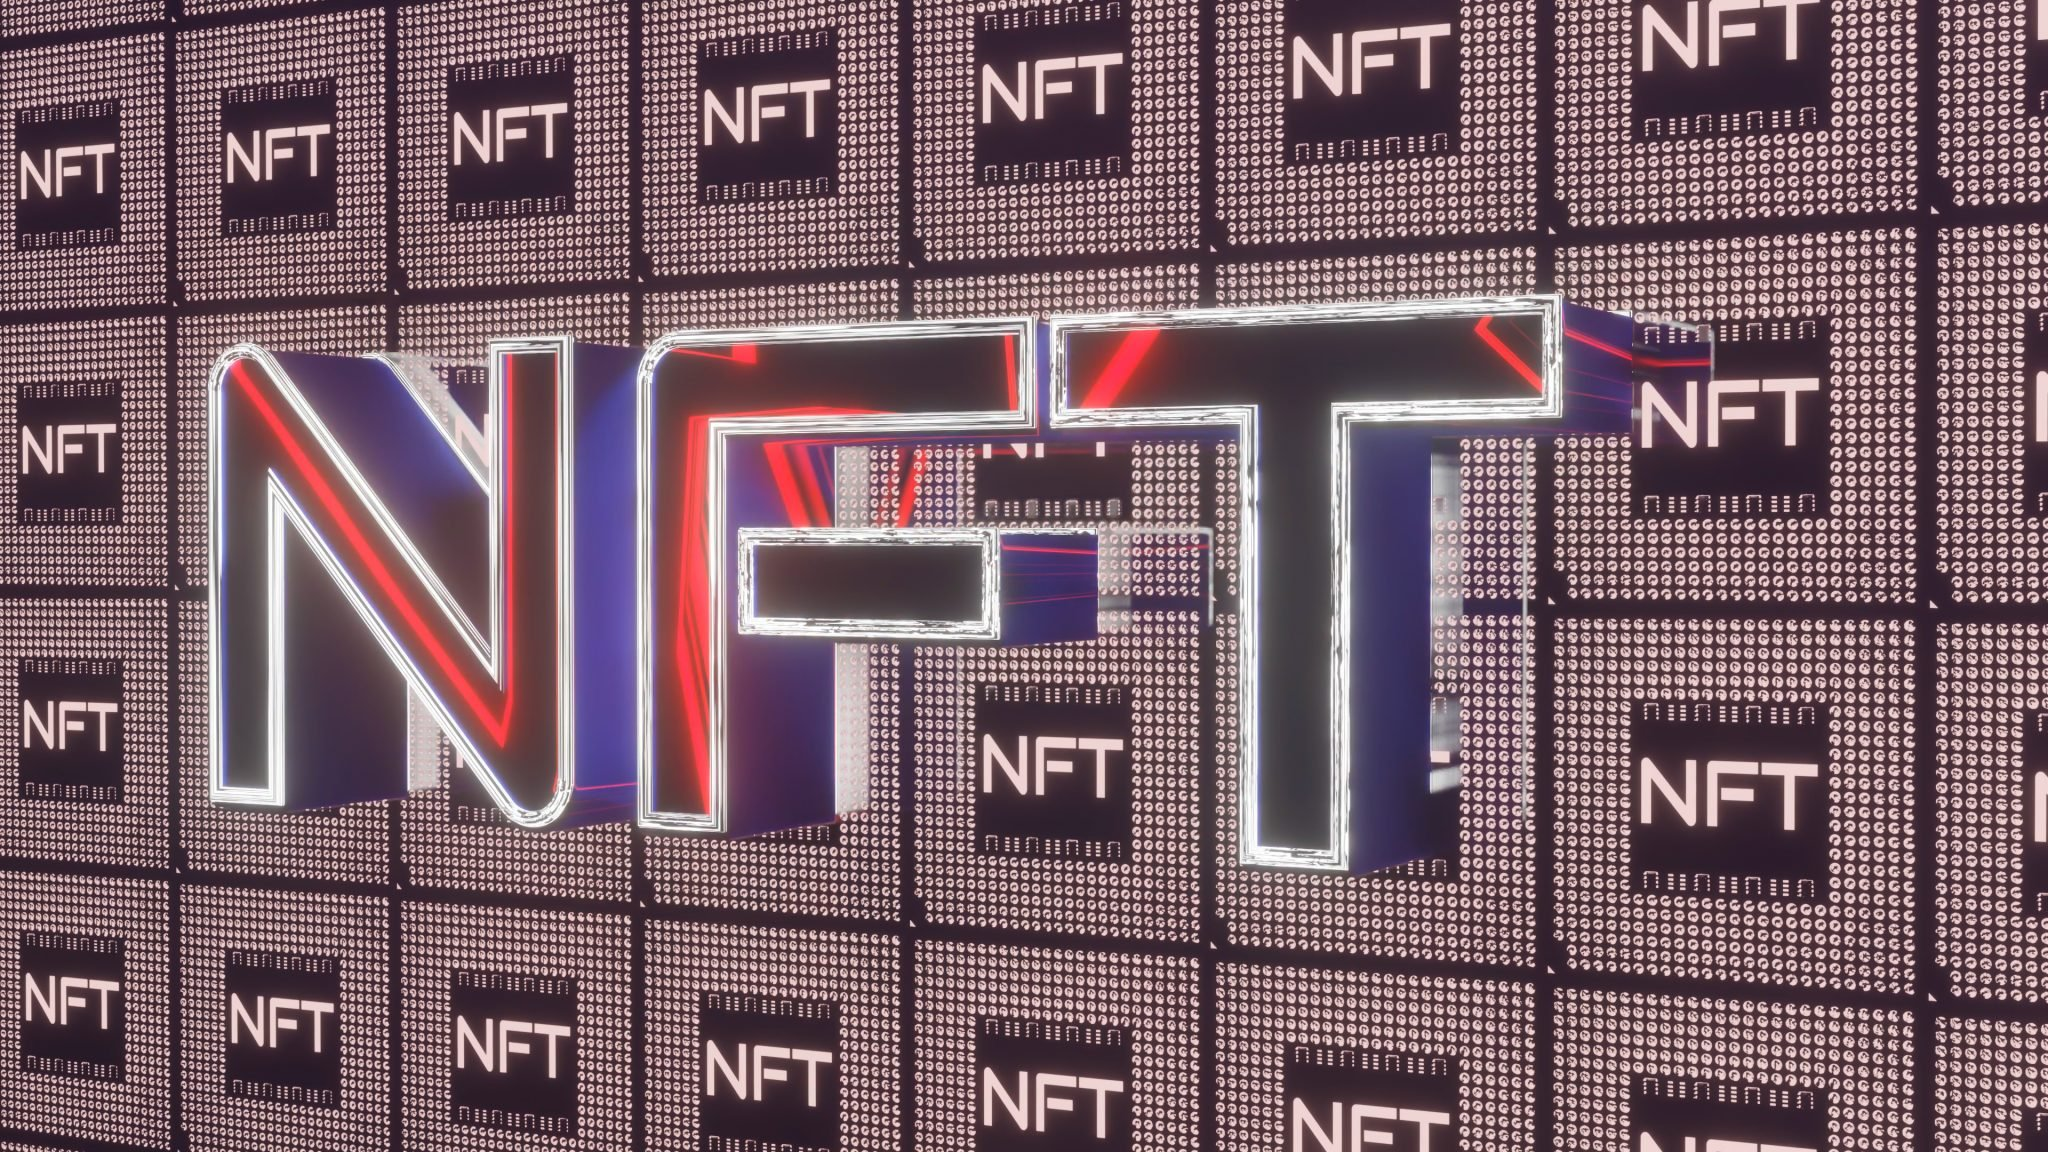 three-dimensional glowing red nft inscription on a dark background. crypto art concept. 3d render illustration